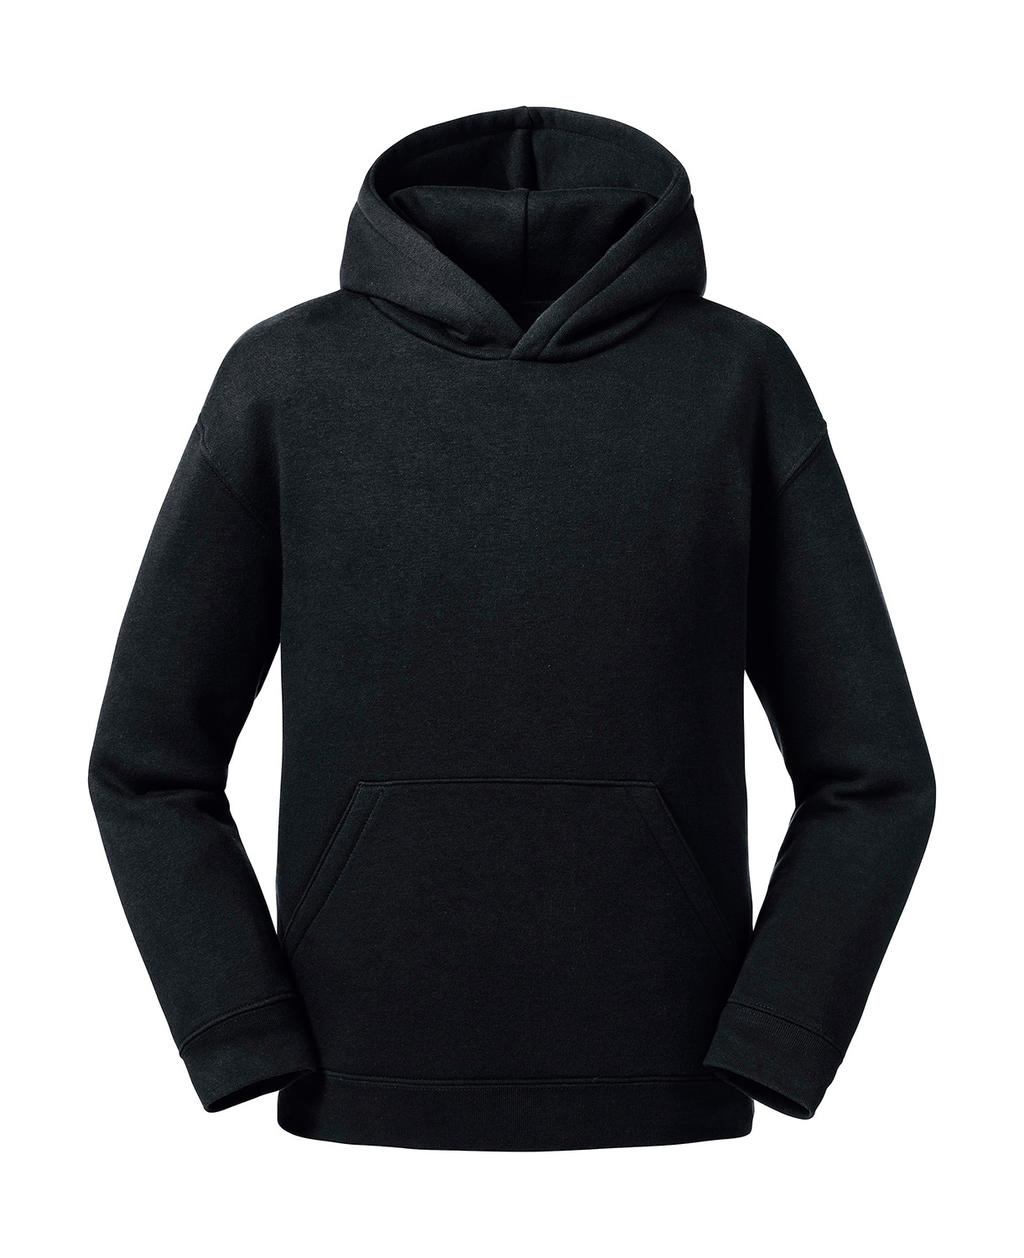 Kids' Authentic Hooded Sweat